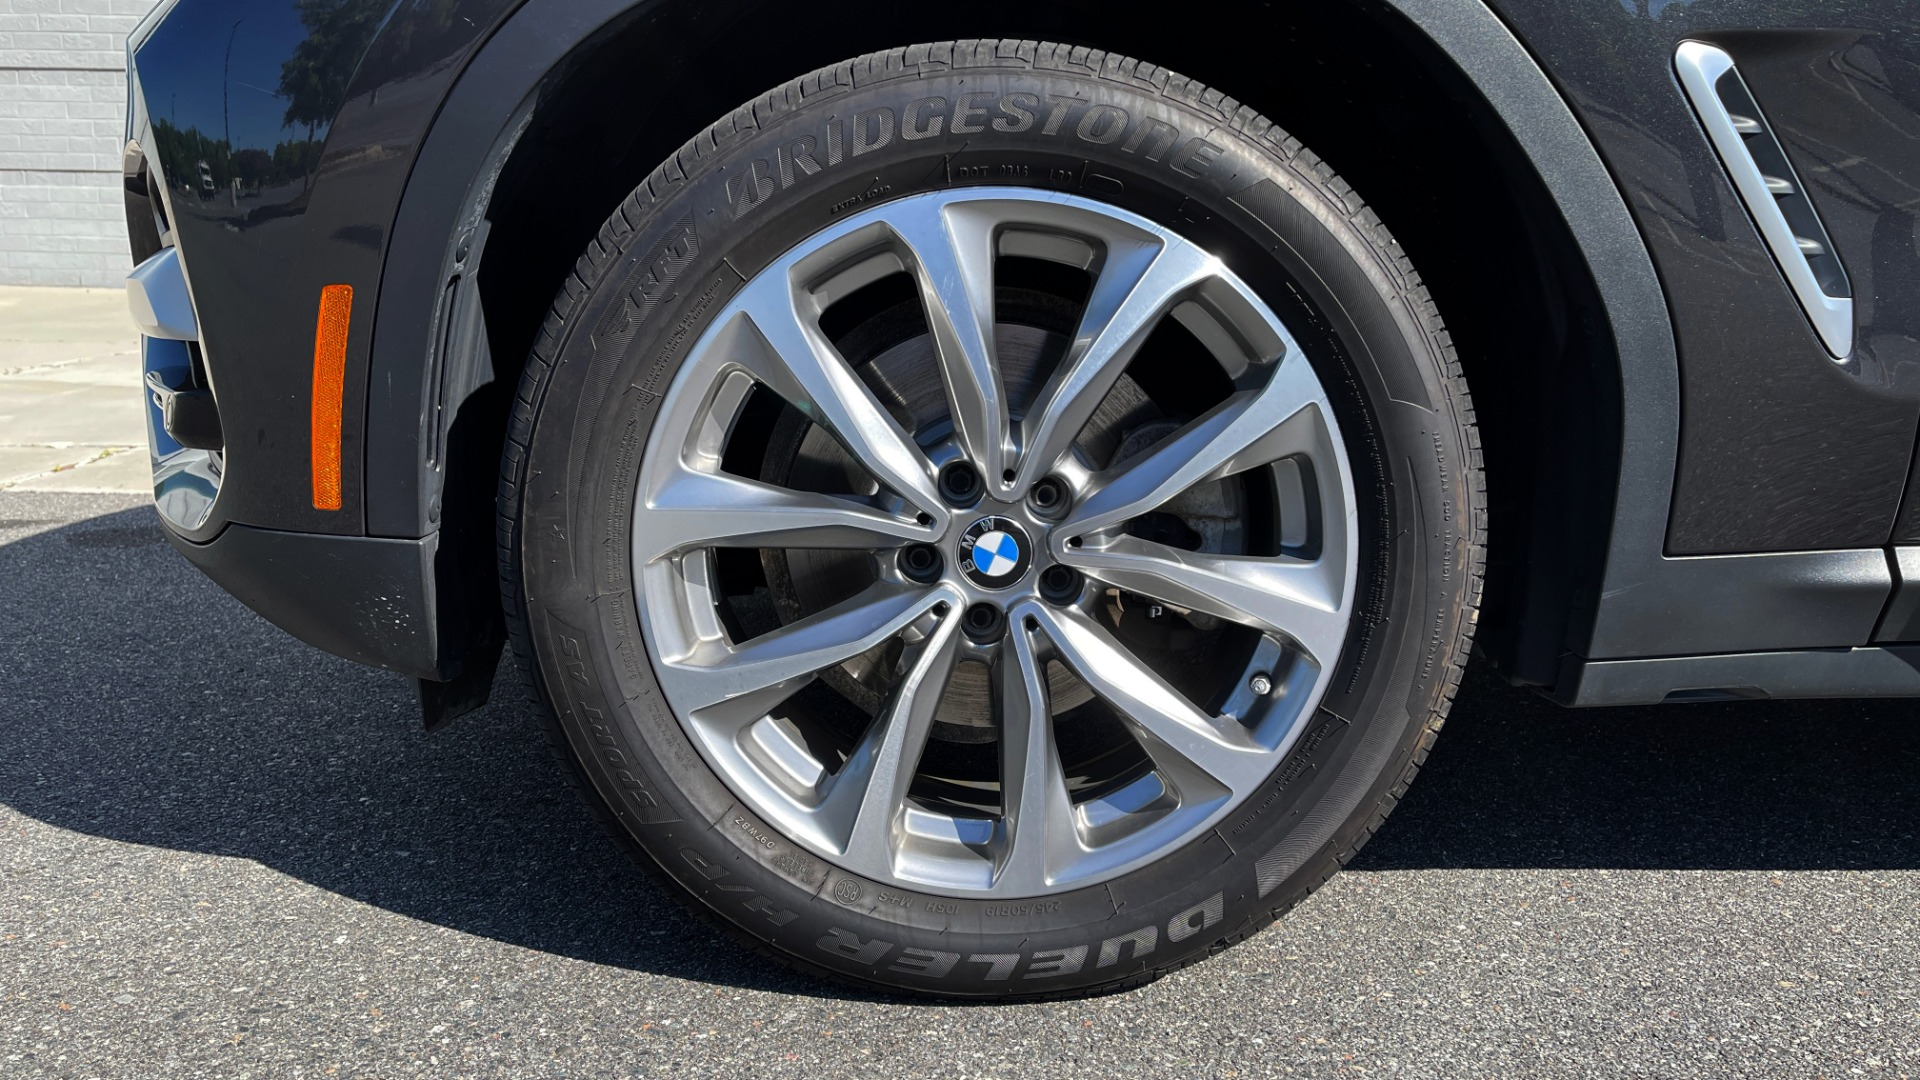 Used 2018 BMW X3 XDRIVE30I PREMIUM / NAV / DRVR ASST PLUS / CONV PKG / SUNROOF / REARVIEW for sale $33,795 at Formula Imports in Charlotte NC 28227 79